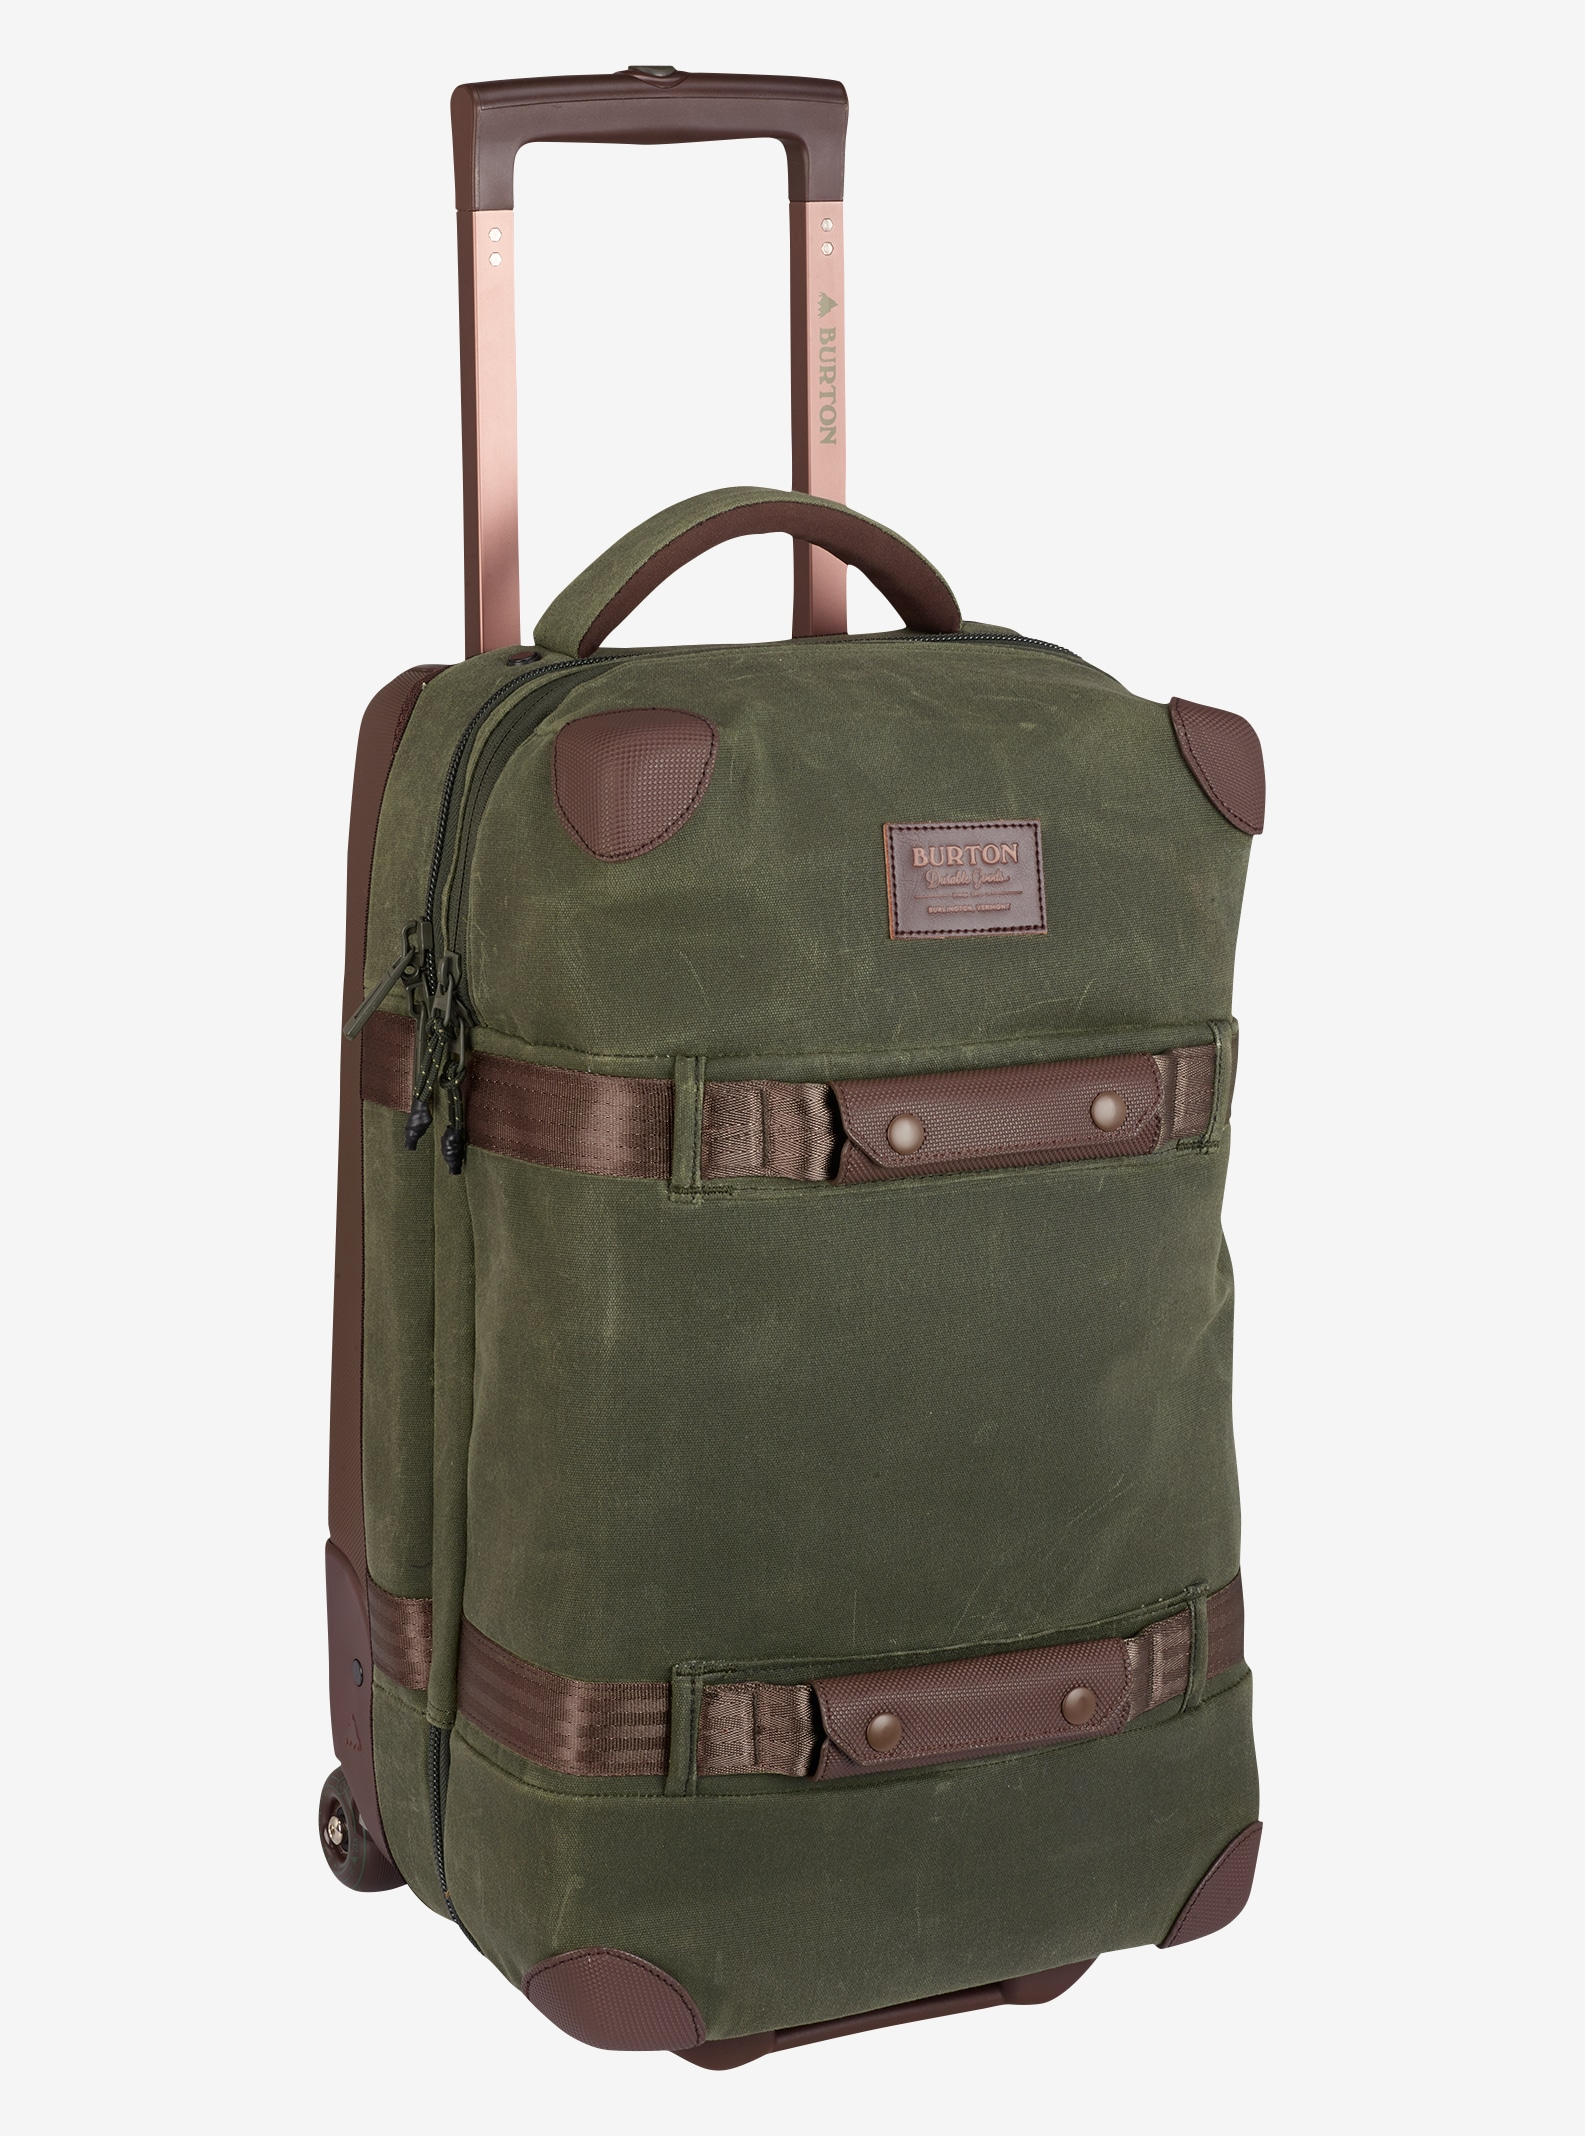 Burton - Valise à roulettes Wheelie Flight Deck affichage en Forest Night Waxed Canvas